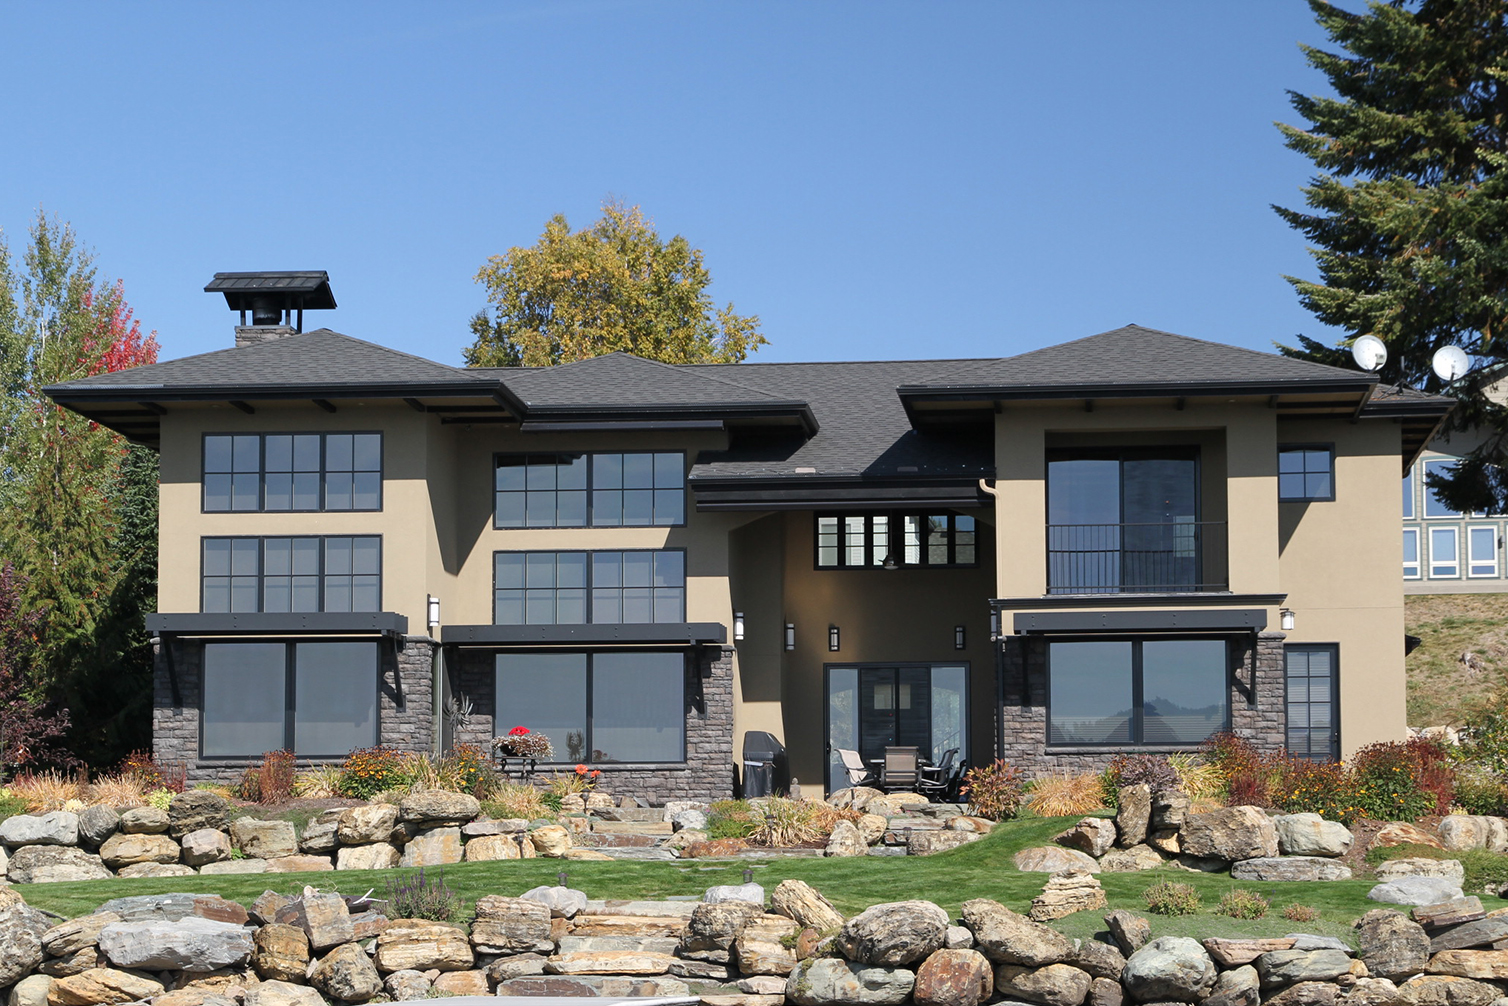 Sandpoint Builders, Inc. builds custom dream homes in North Idaho background image.